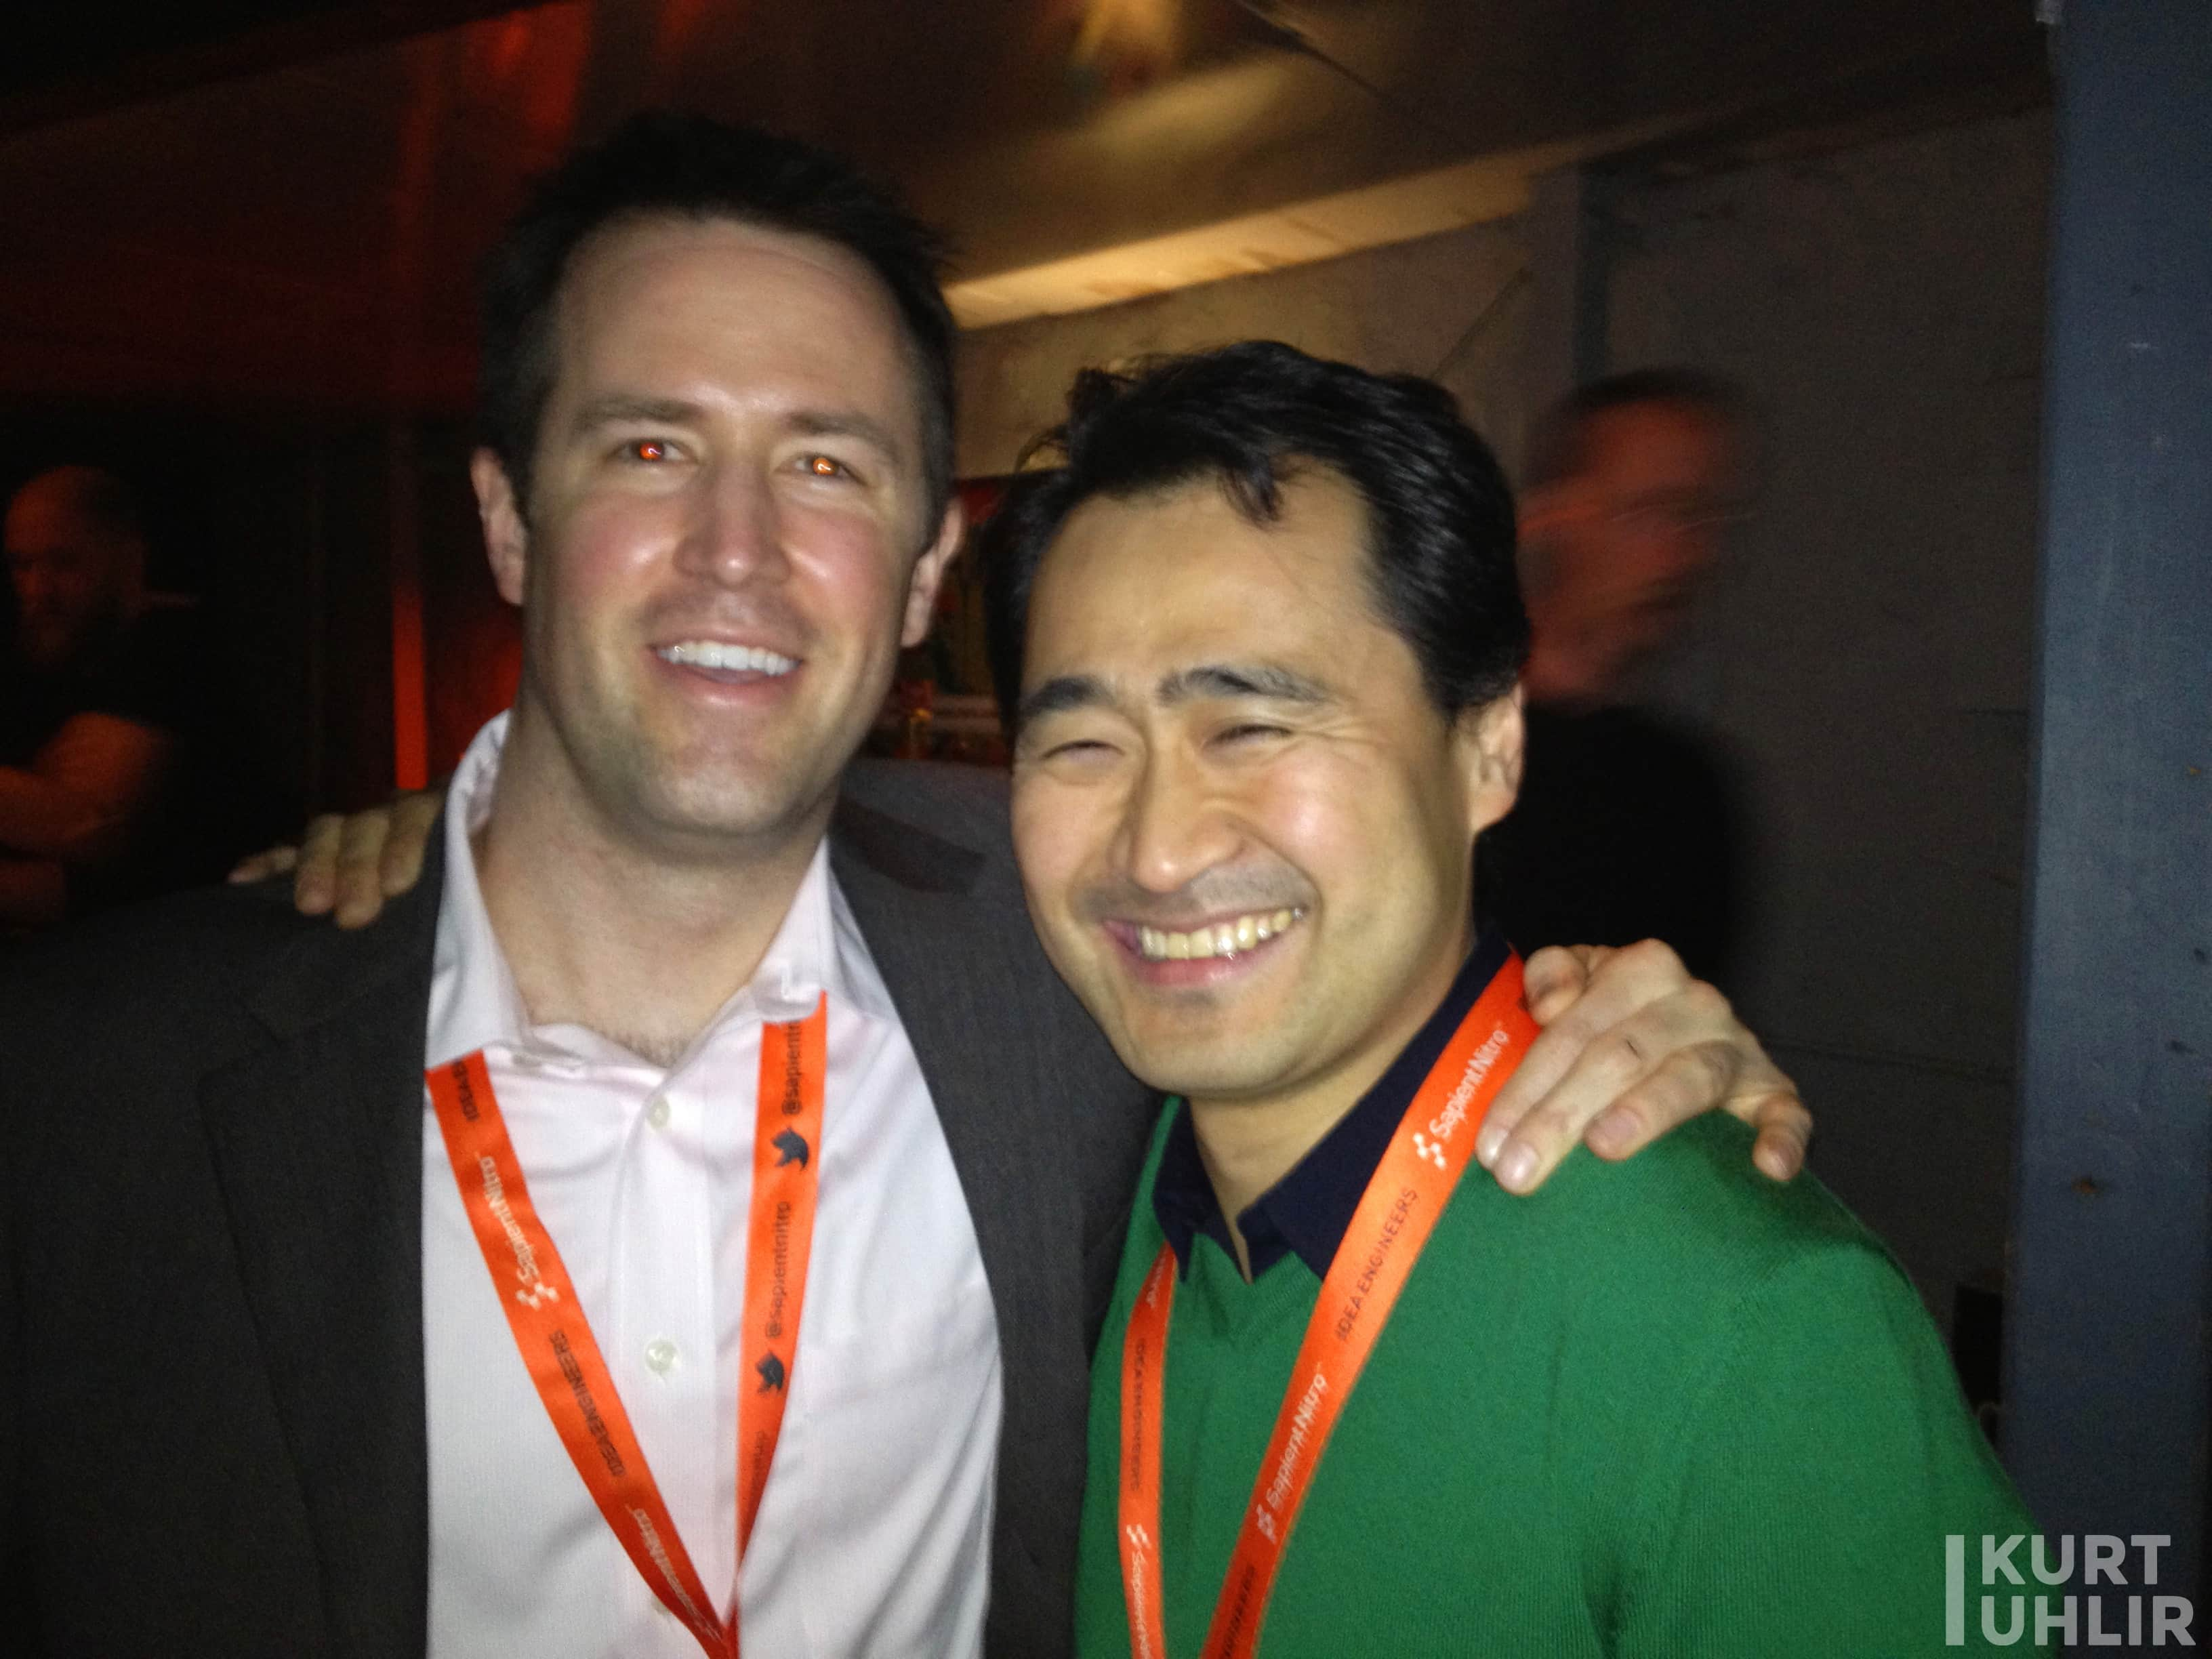 CEO and Founder of Meltwater, Jørn Lyseggen with Technology Expert Kurt Uhlir